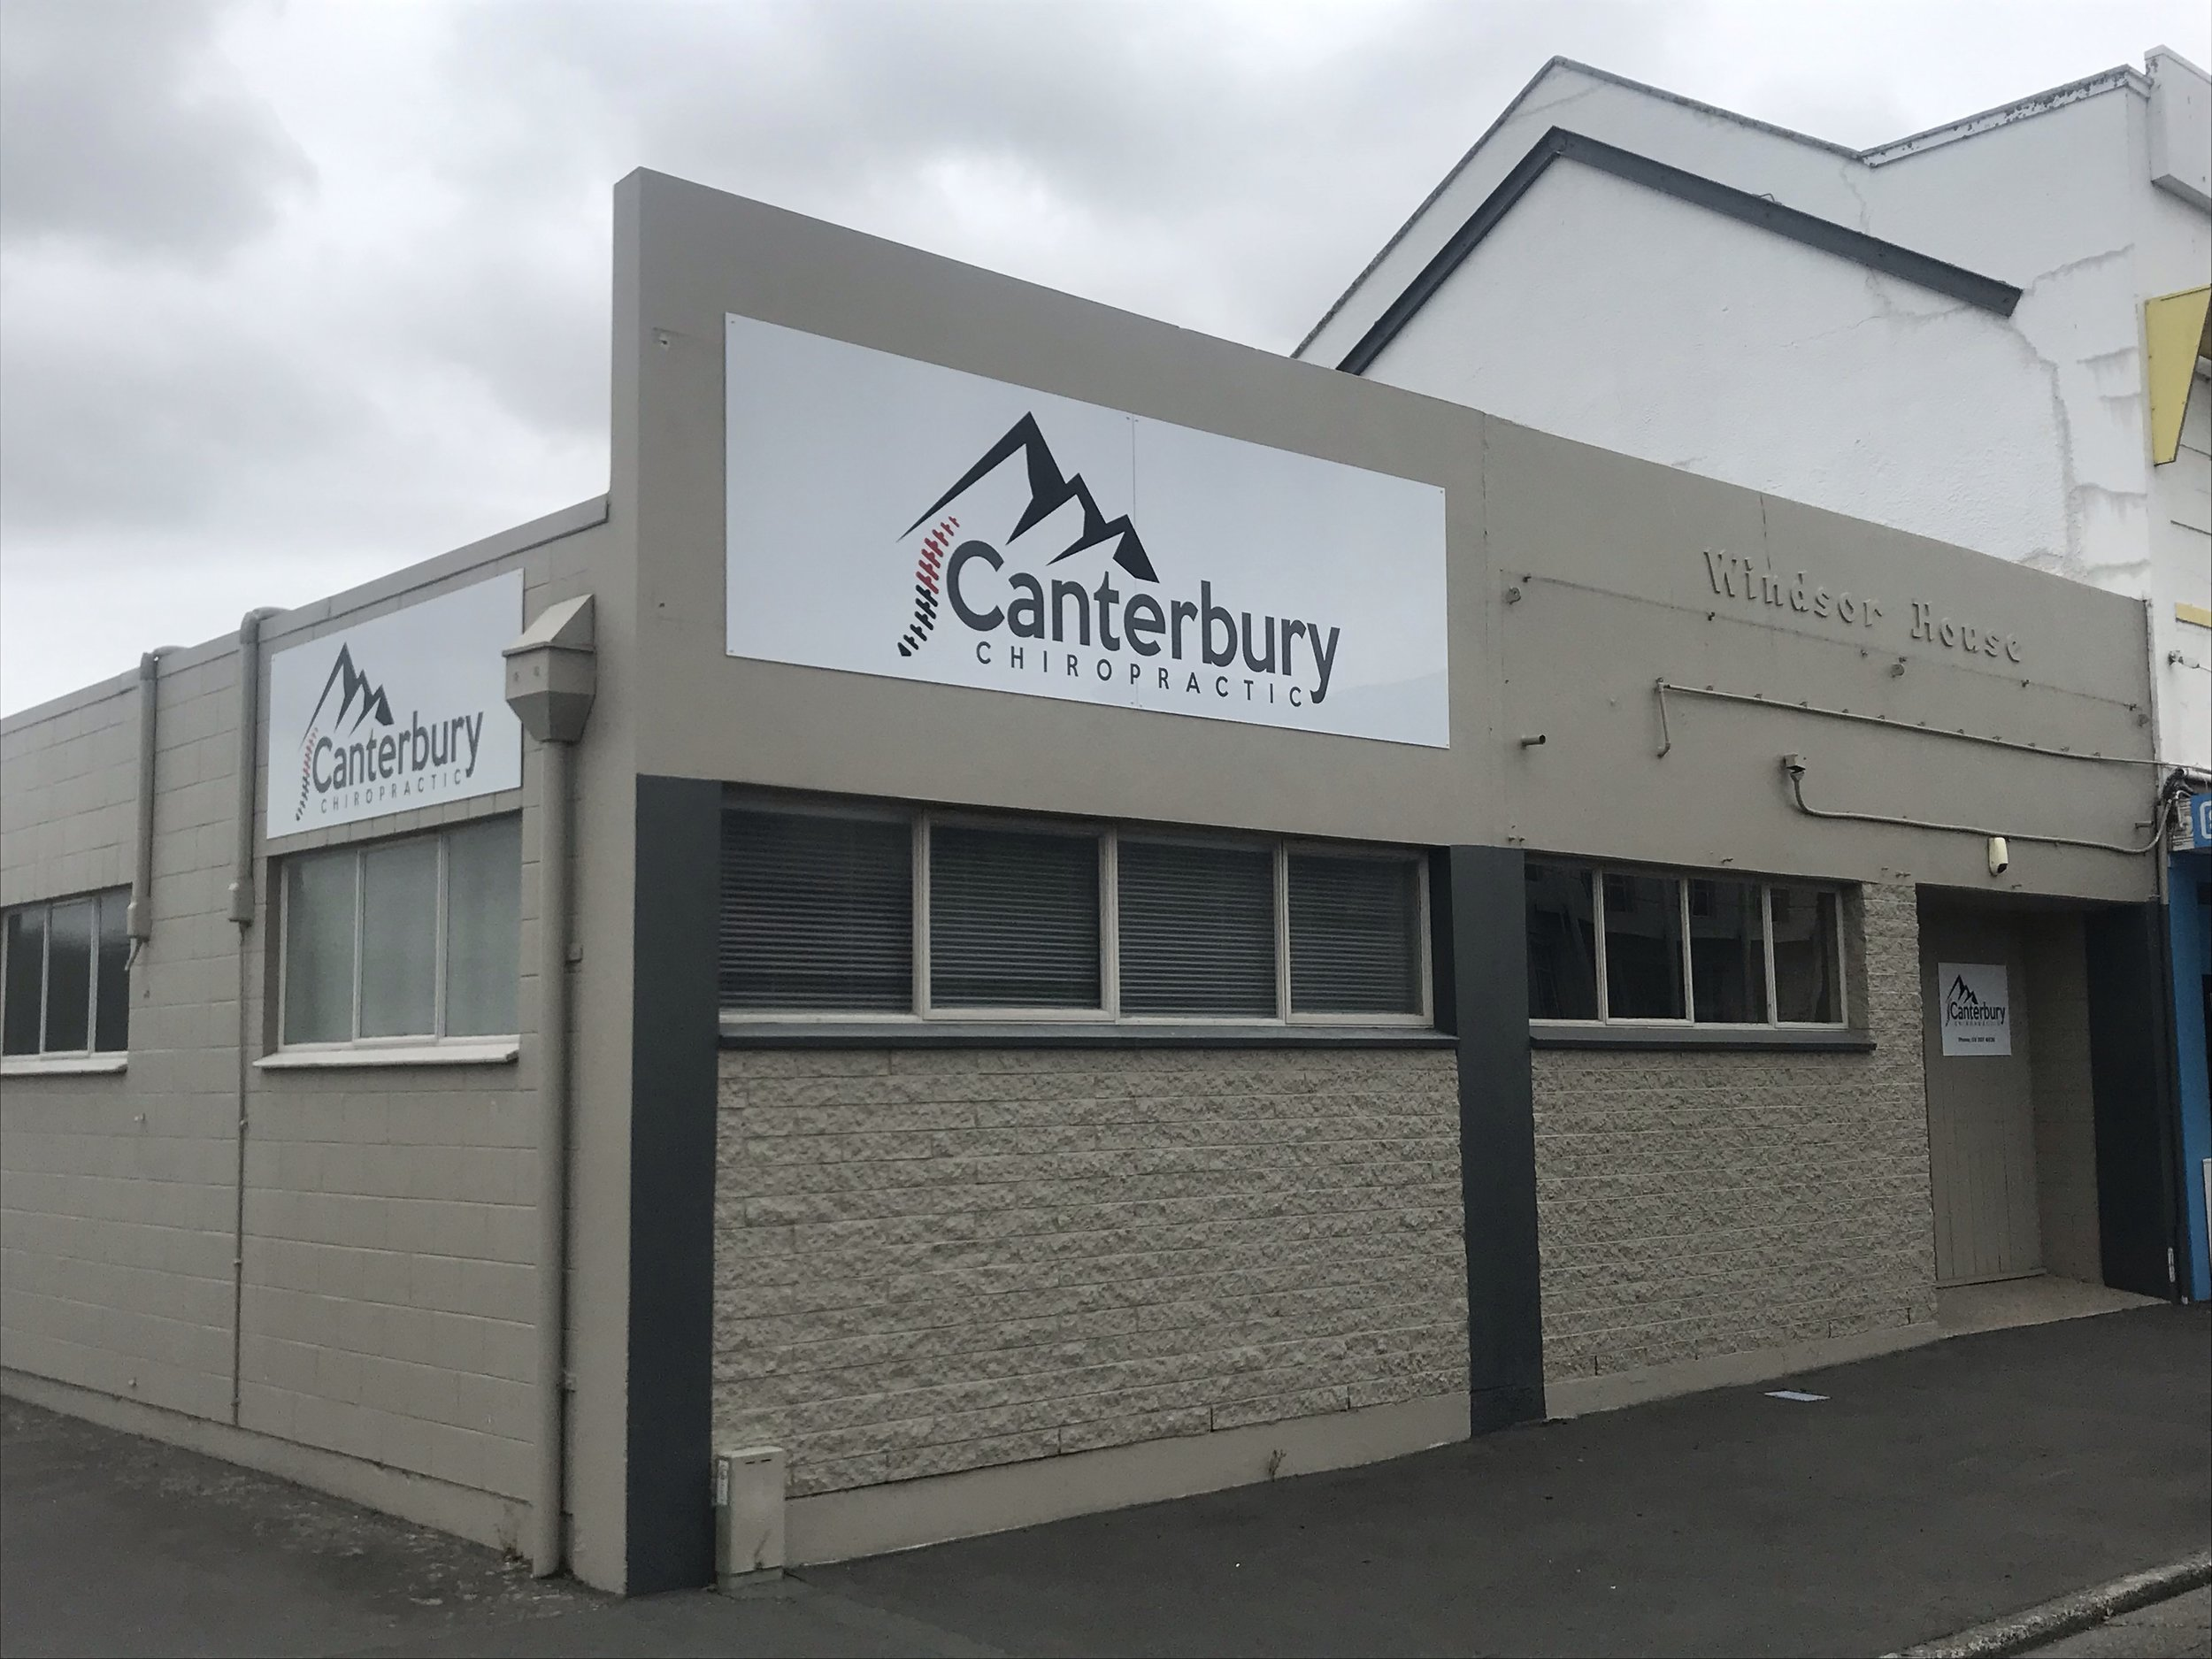 Our Practice - We are located in Windsor House, 246 Havelock St Ashburton.There is free onsite parking and plenty of street parking also.